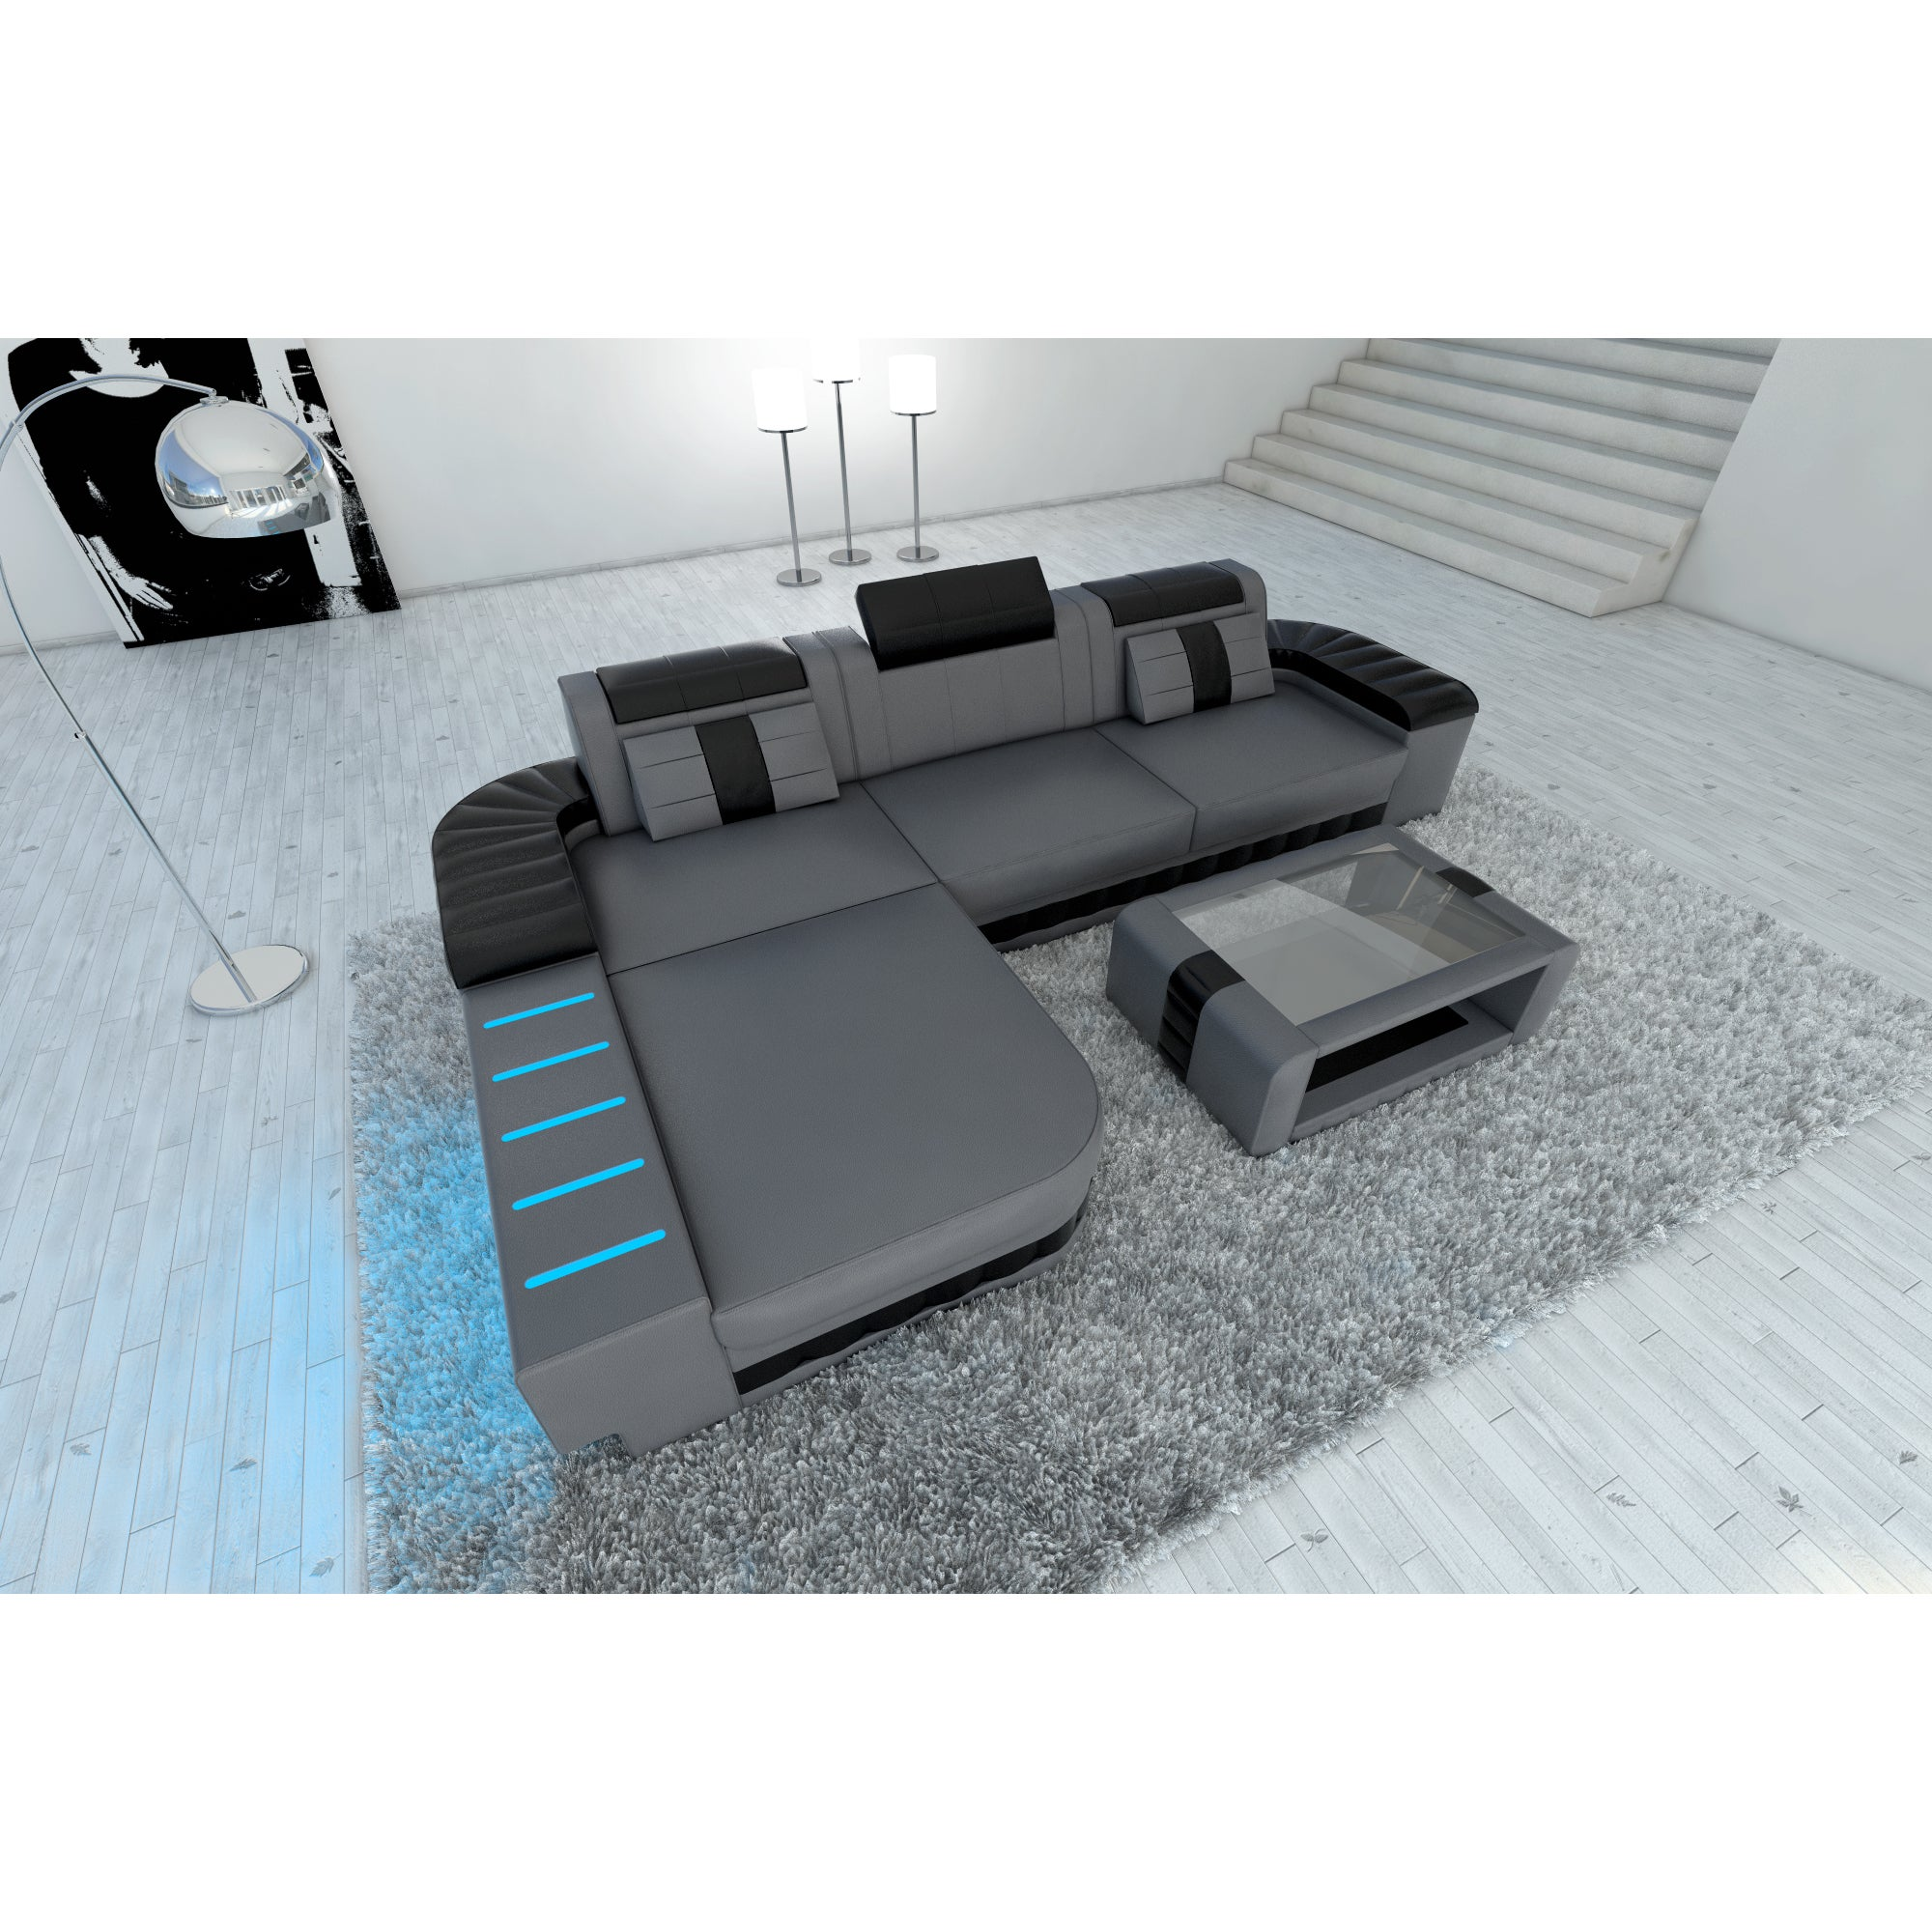 Prime Design Sectional Sofa Boston Led Lights L Shaped Spiritservingveterans Wood Chair Design Ideas Spiritservingveteransorg